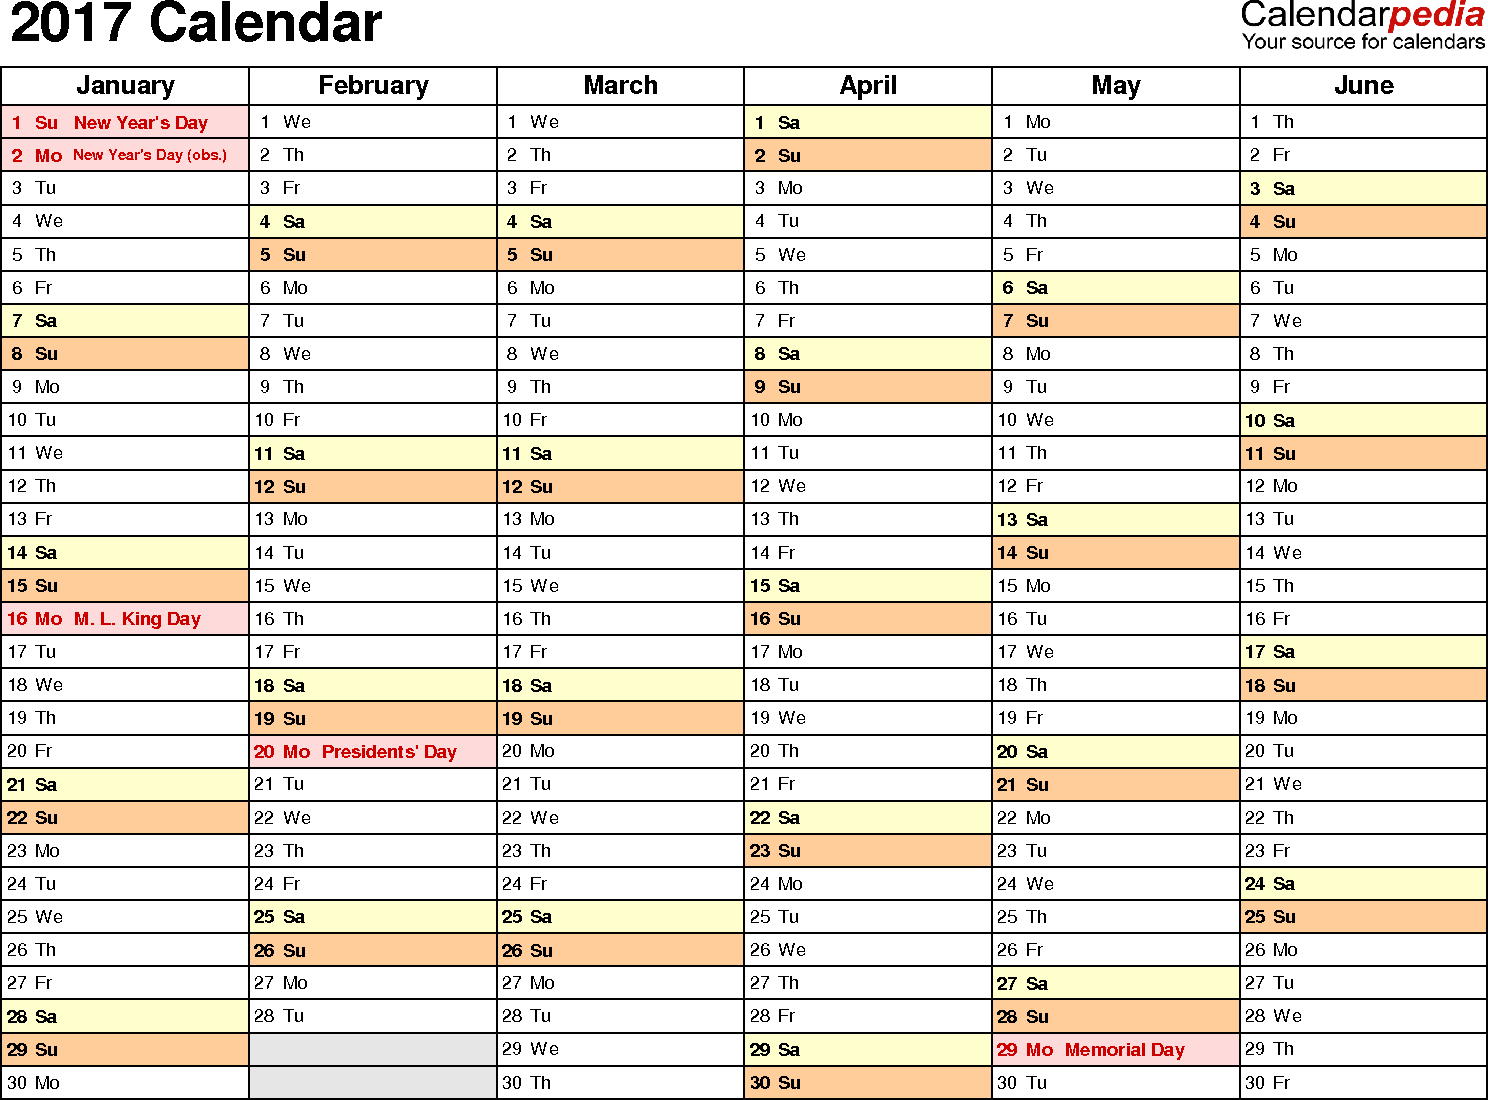 Ediblewildsus  Pretty  Calendar  Download  Free Printable Excel Templates Xls With Marvelous Template   Calendar For Excel Months Horizontally  Pages Landscape Orientation With Easy On The Eye Join Columns In Excel Also Basketball Stat Sheet Excel In Addition Regular Expressions In Excel And Project Management With Excel As Well As Excel Linear Regression Function Additionally Excel Activesheet From Calendarpediacom With Ediblewildsus  Marvelous  Calendar  Download  Free Printable Excel Templates Xls With Easy On The Eye Template   Calendar For Excel Months Horizontally  Pages Landscape Orientation And Pretty Join Columns In Excel Also Basketball Stat Sheet Excel In Addition Regular Expressions In Excel From Calendarpediacom